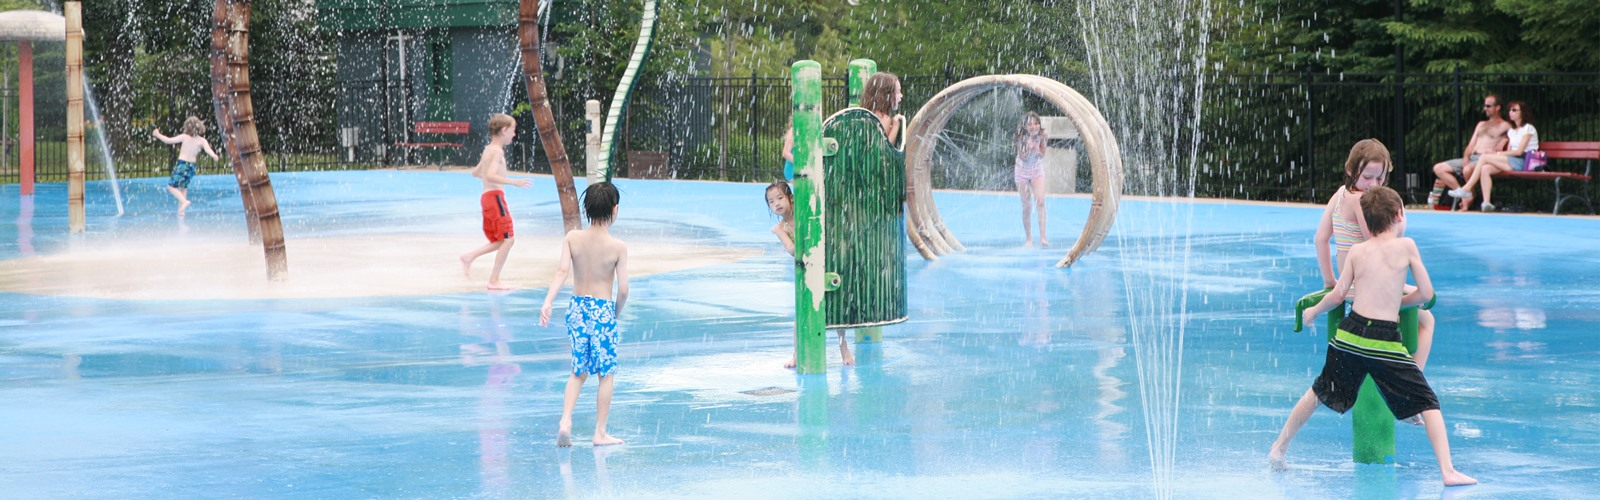 Children playing at splash pad